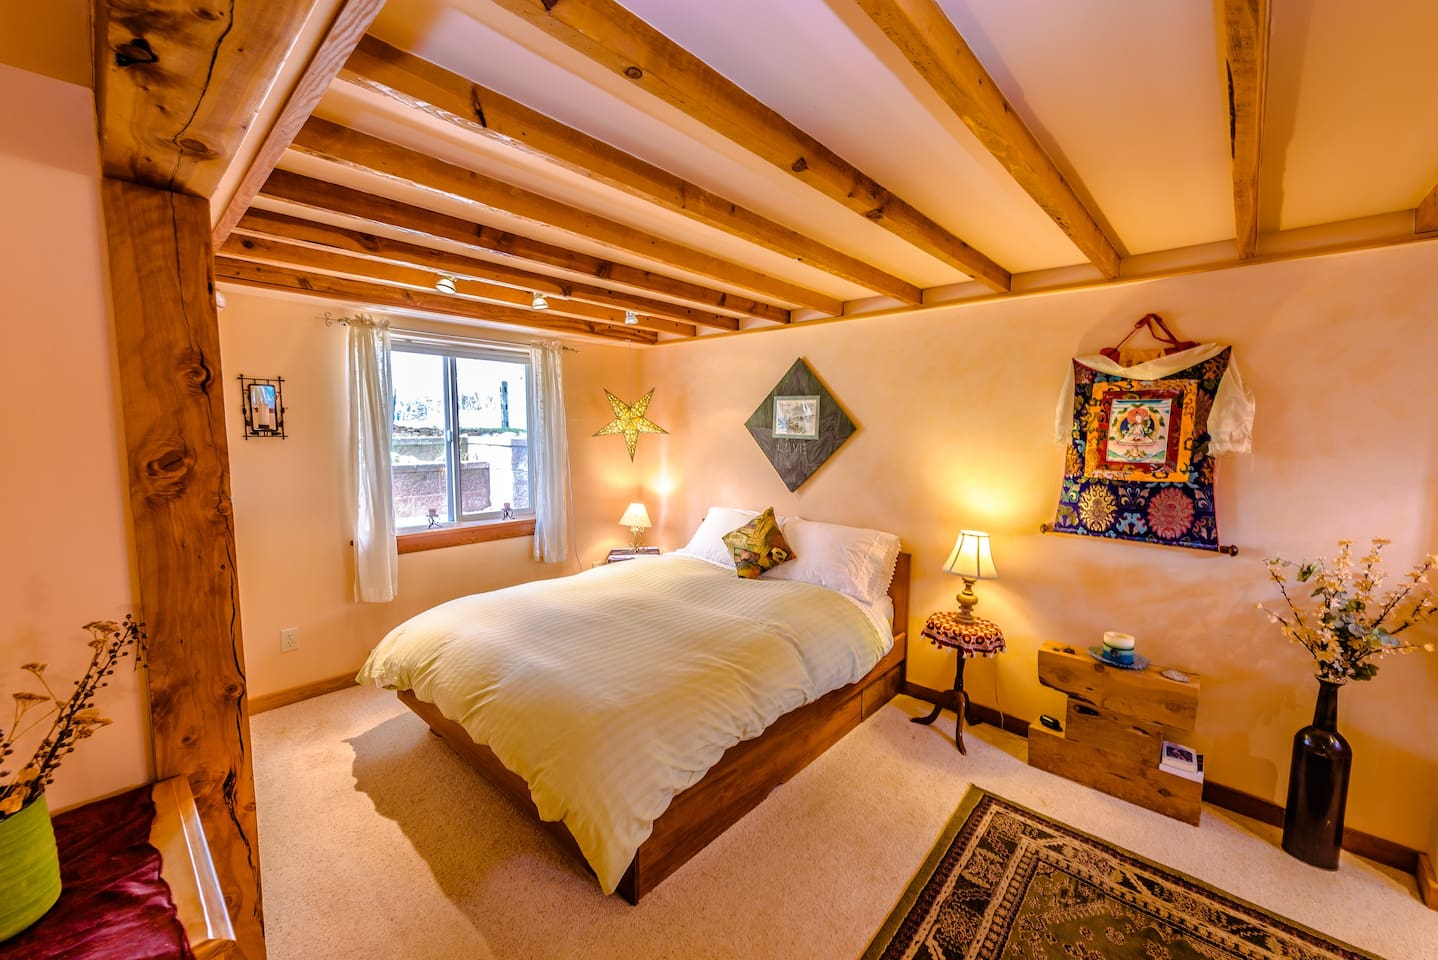 Beautifully remodeled basement bedroom. Very quiet. Warm in the cold months and cool in the warm months. Perfect for a great night of sleep!